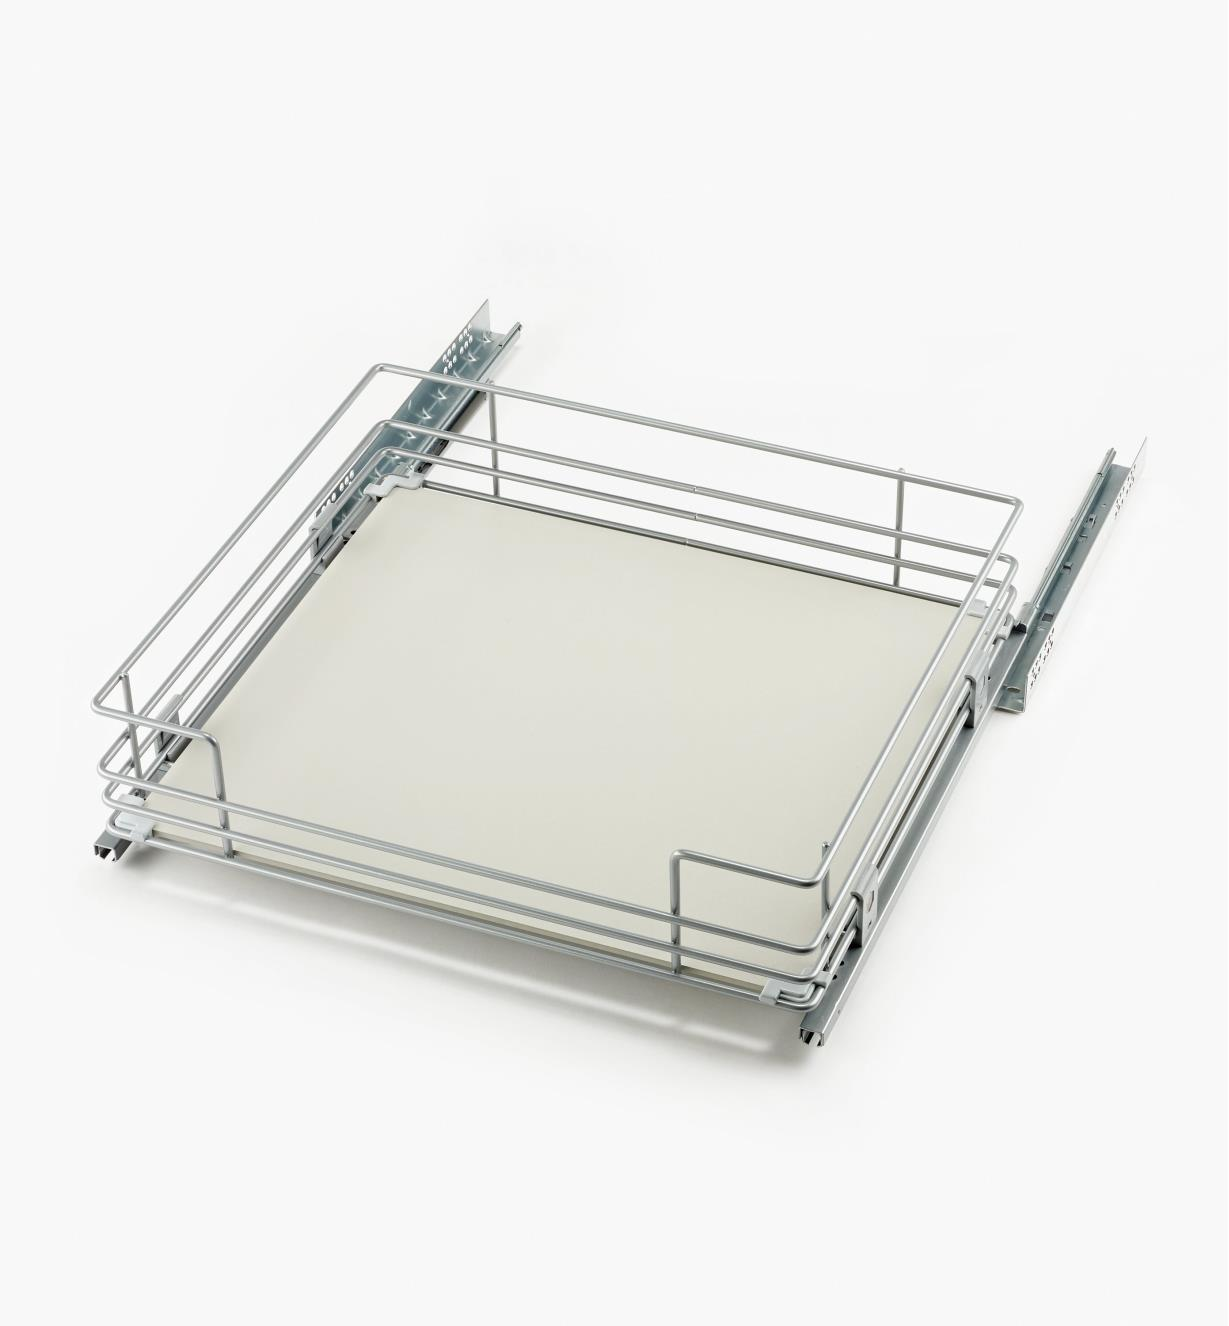 12K3082 - 510mm Solid-Bottom Pull-Out Drawer